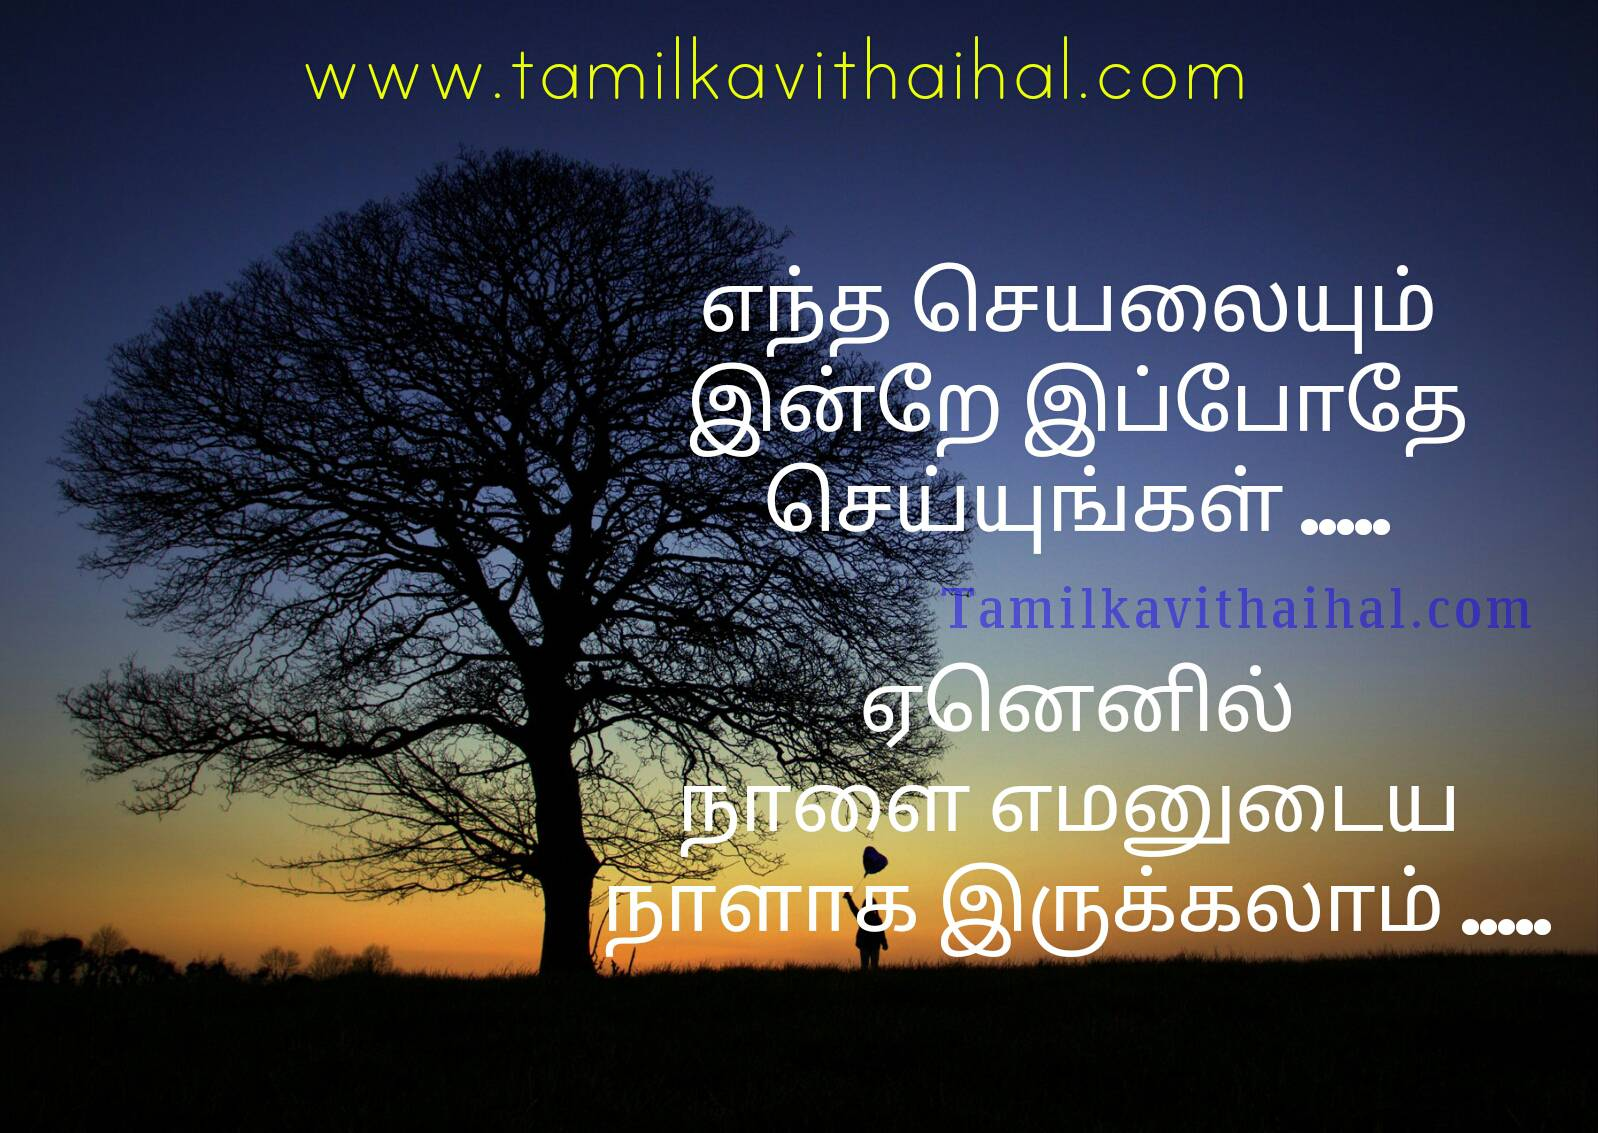 Best tamil quotes for motivation death family future happy facebook status hd wallpapper